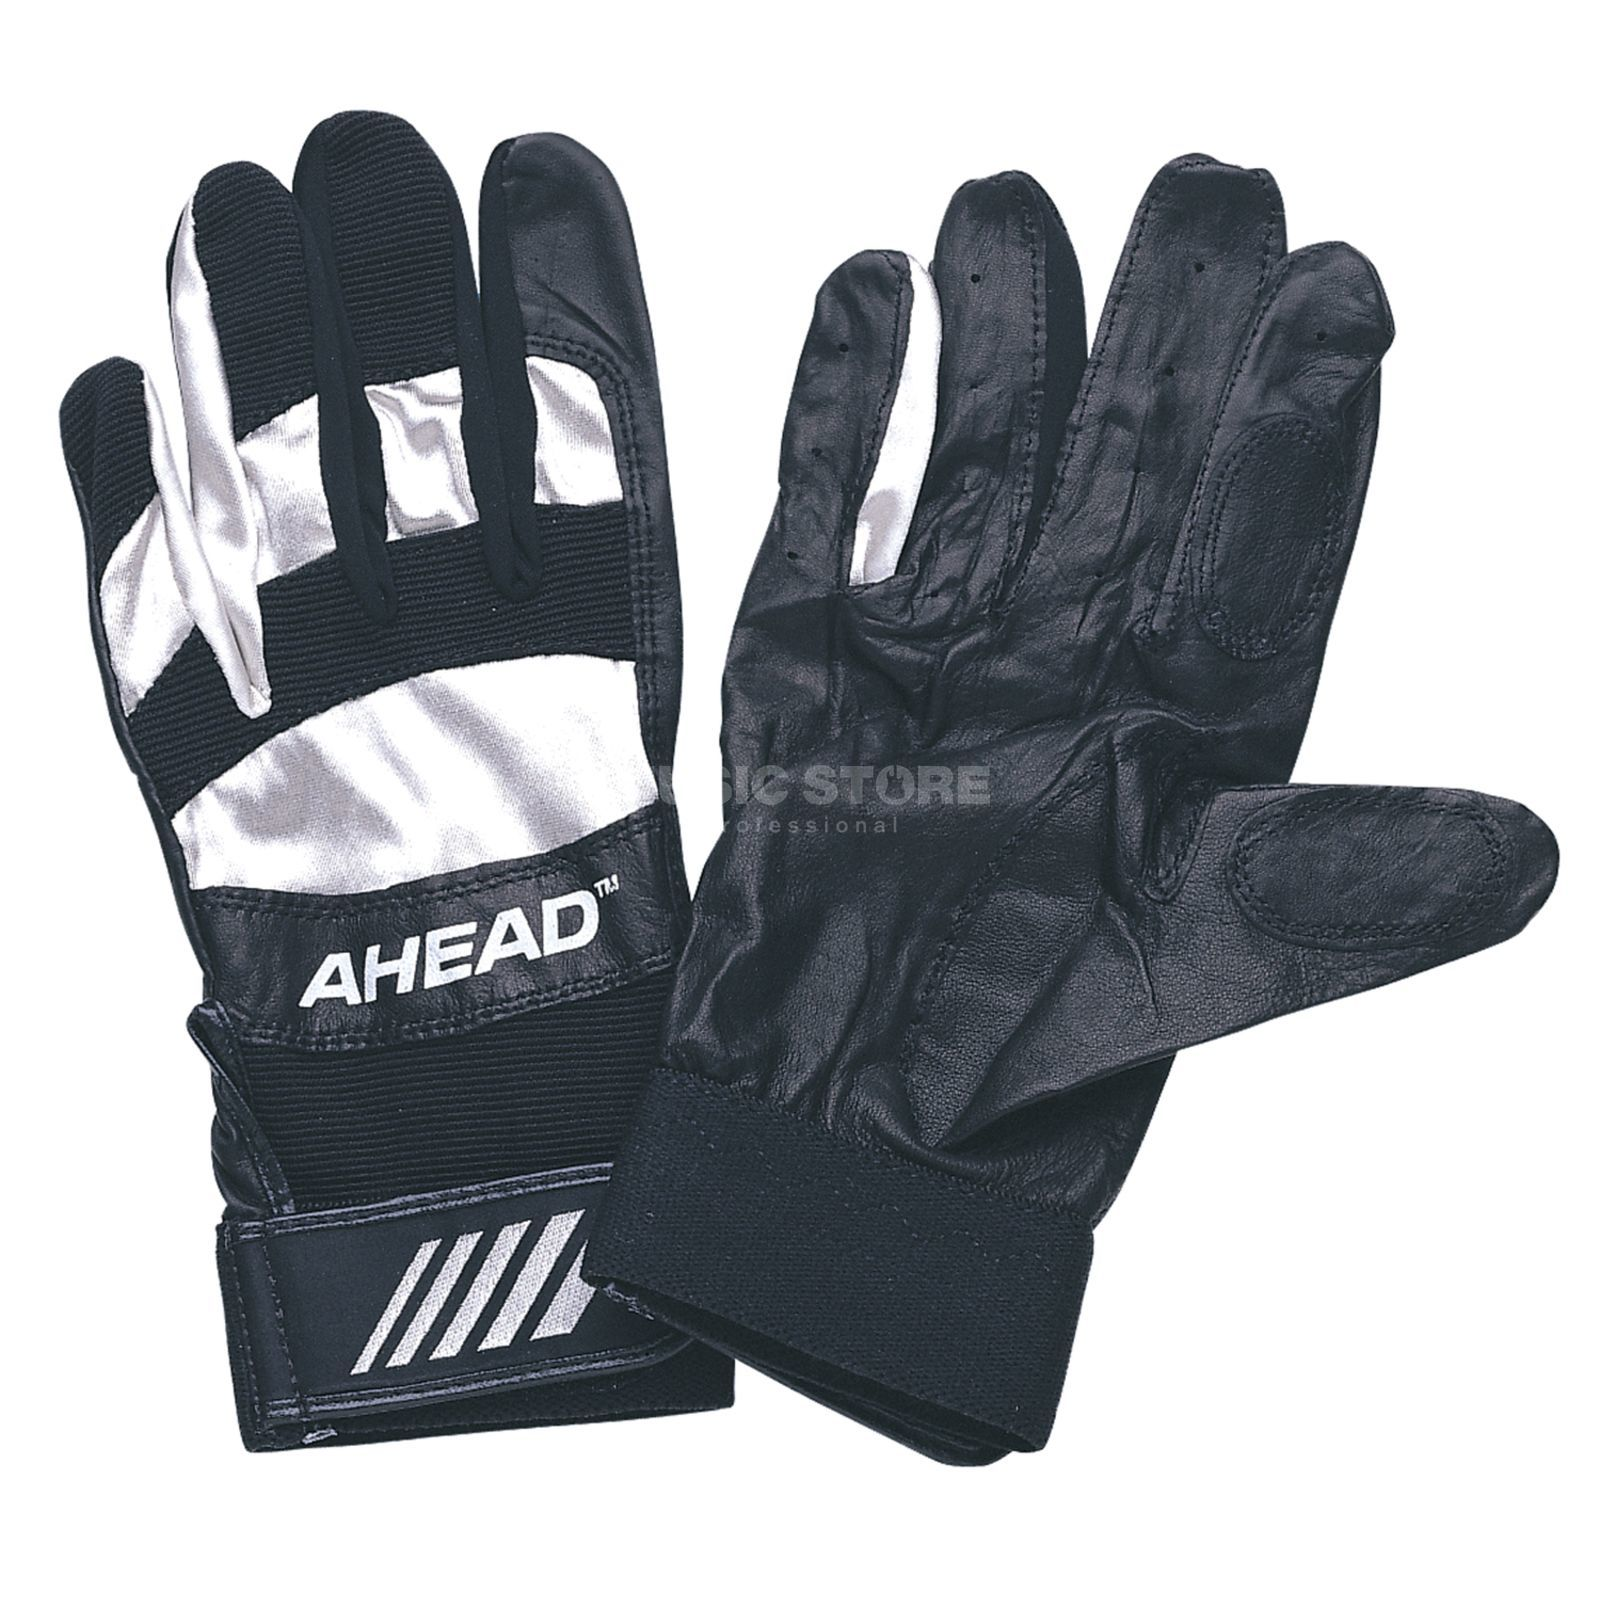 Ahead Sticks Drummer Gloves GLS, small Produktbillede